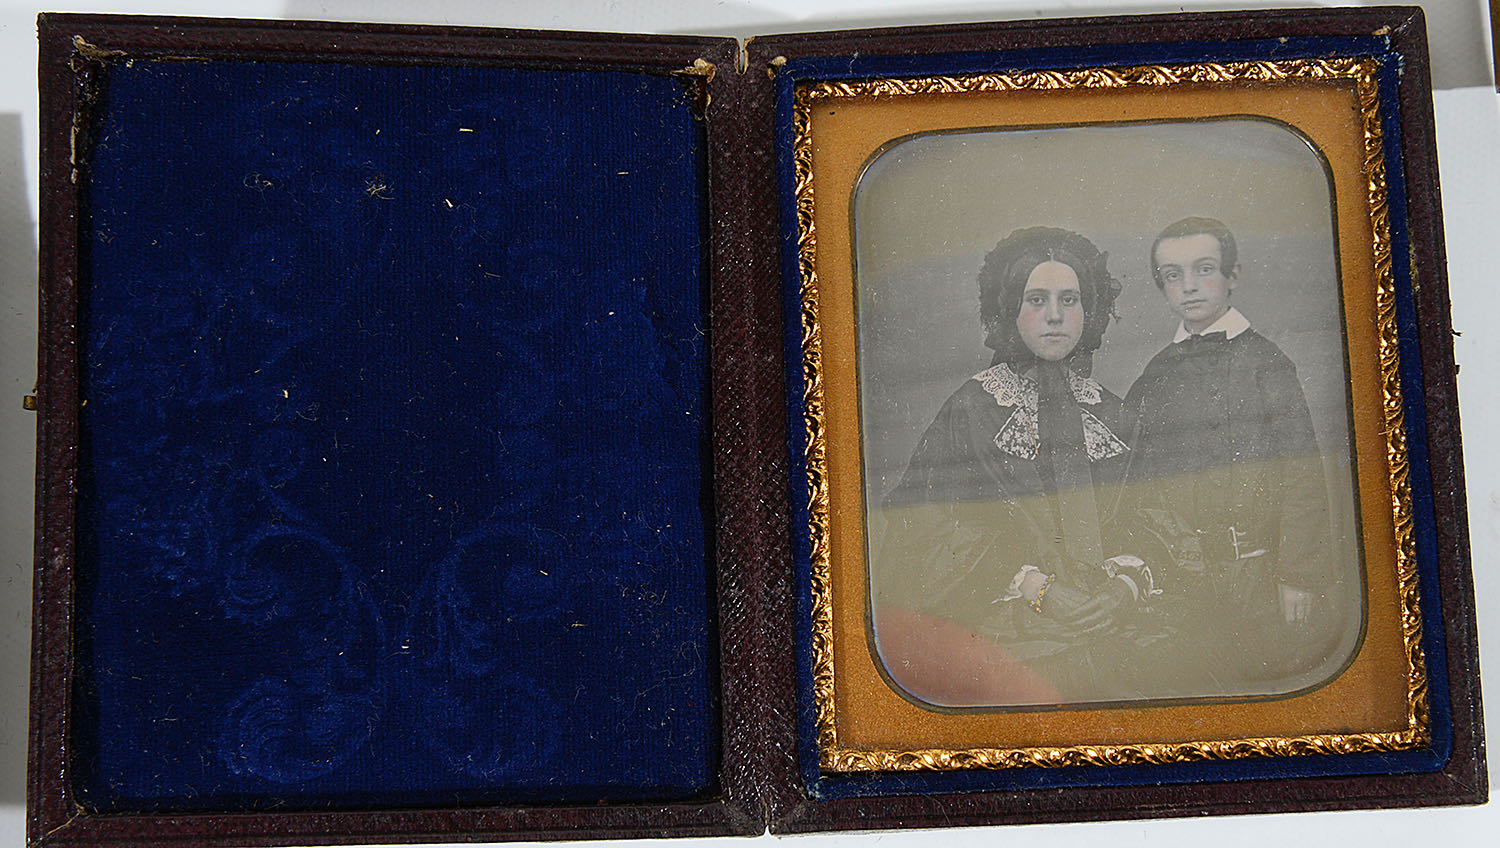 Lot 10 - Mid 19th c daguerreotype and ambrotype photographs, Cornwall c.1860